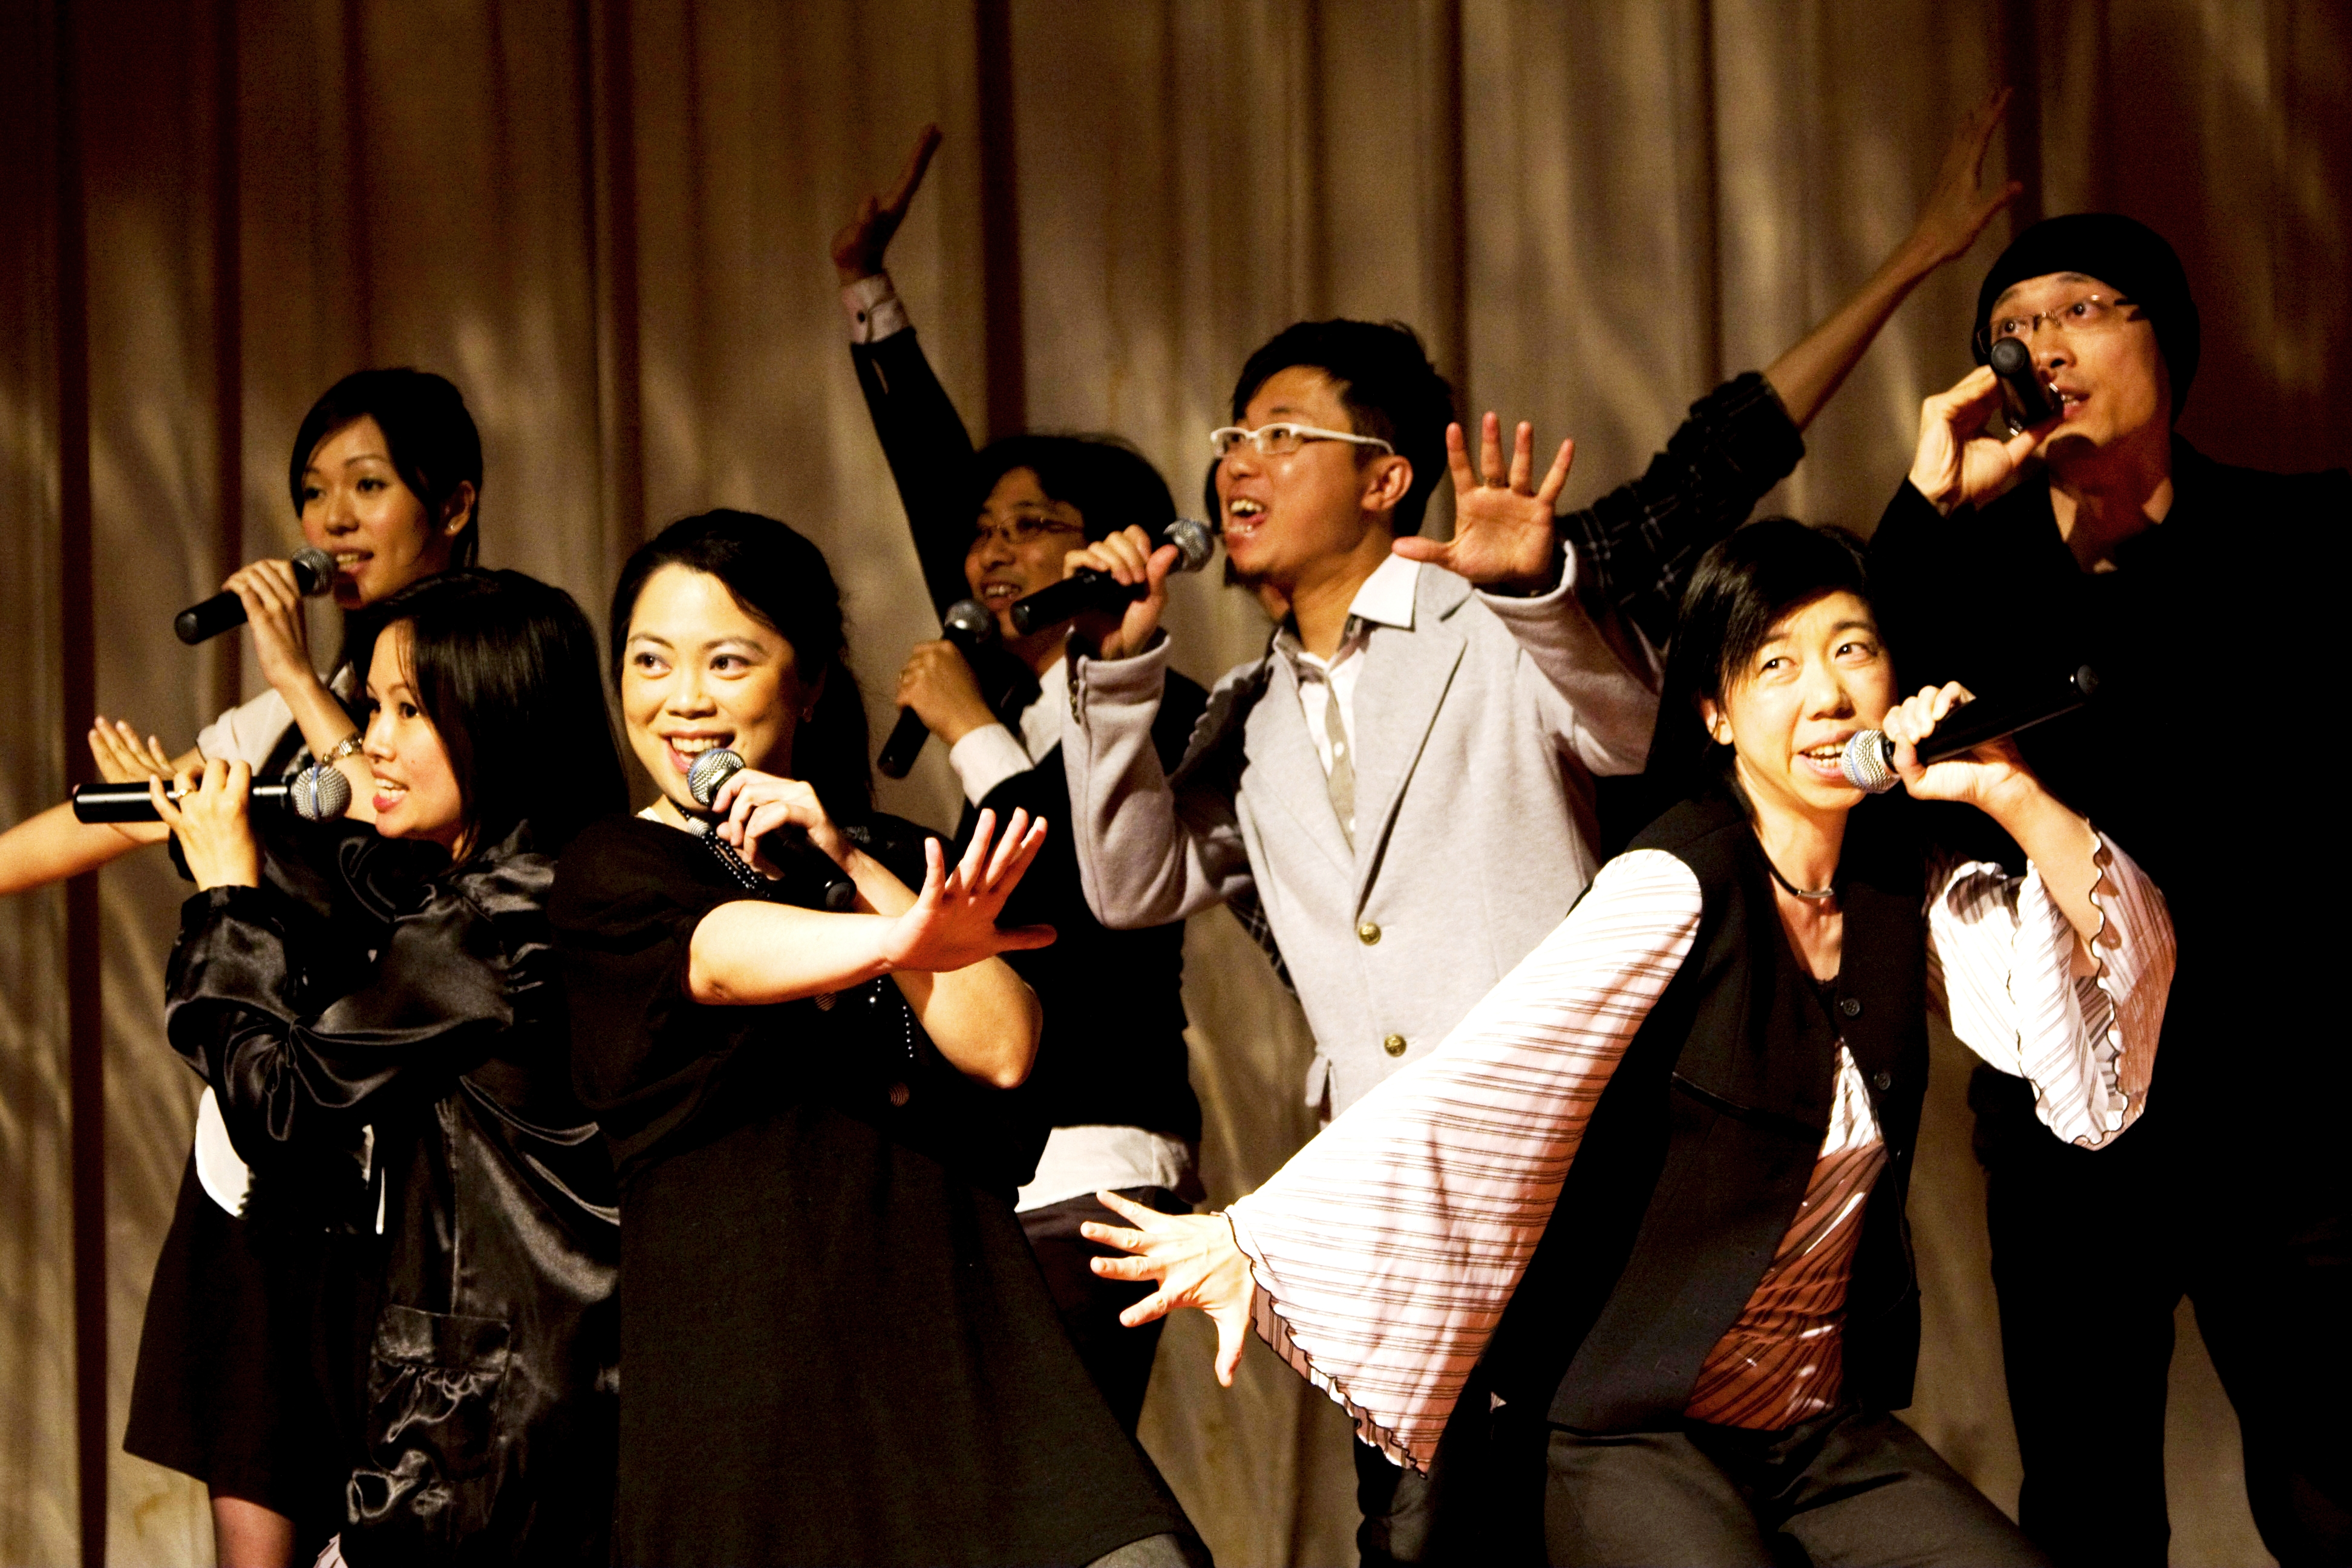 The Gay Singers, a well-established a cappella group in Hong Kong, ...